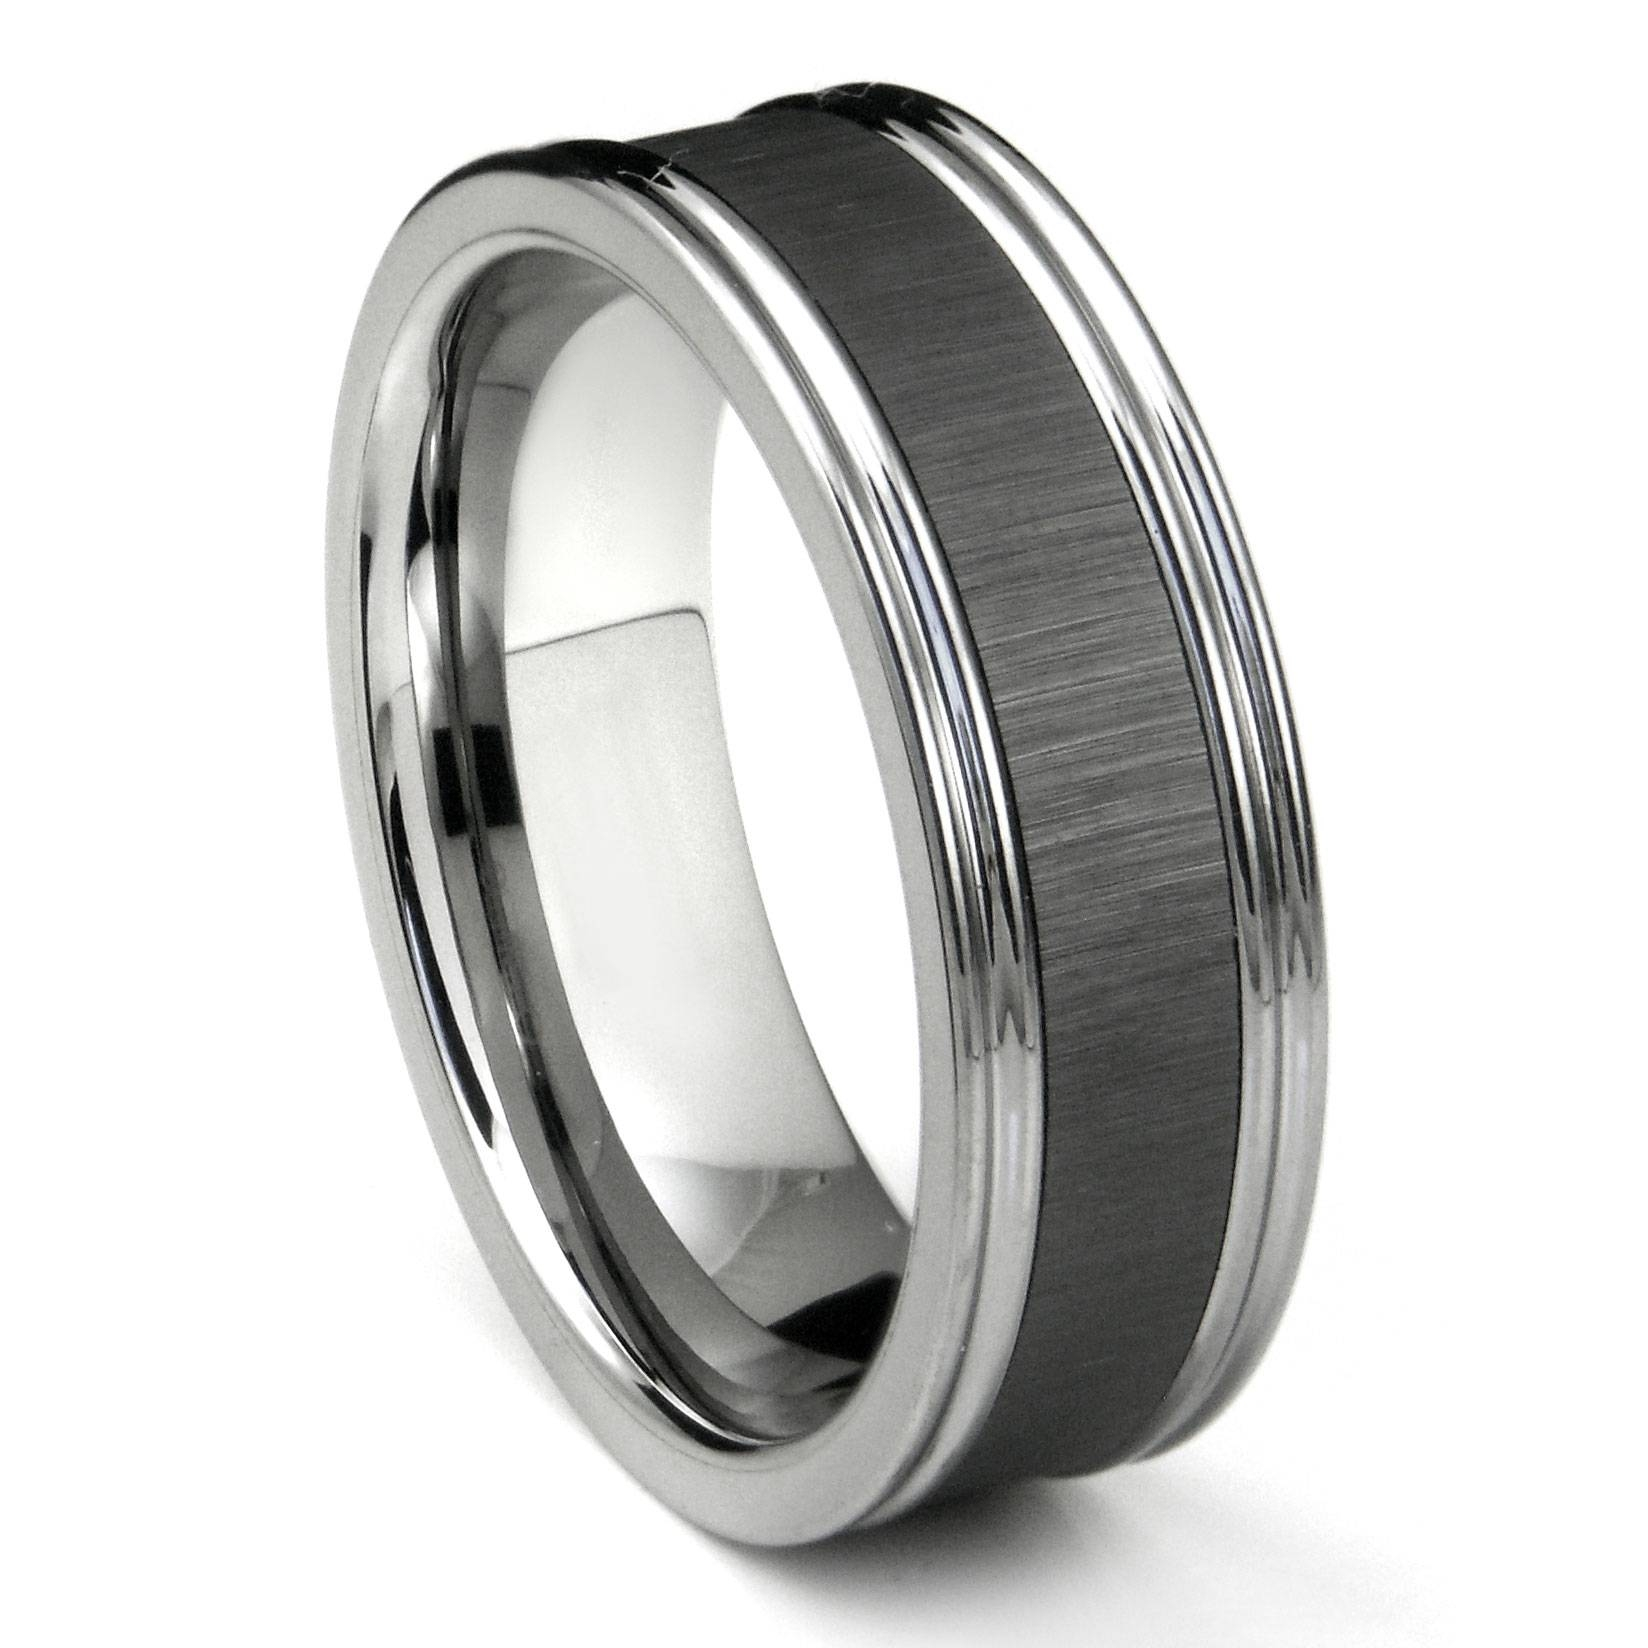 Tungsten Carbide Black Ceramic Inlay Wedding Band Ring W Intended For Tungsten Titanium Wedding Bands (View 8 of 15)